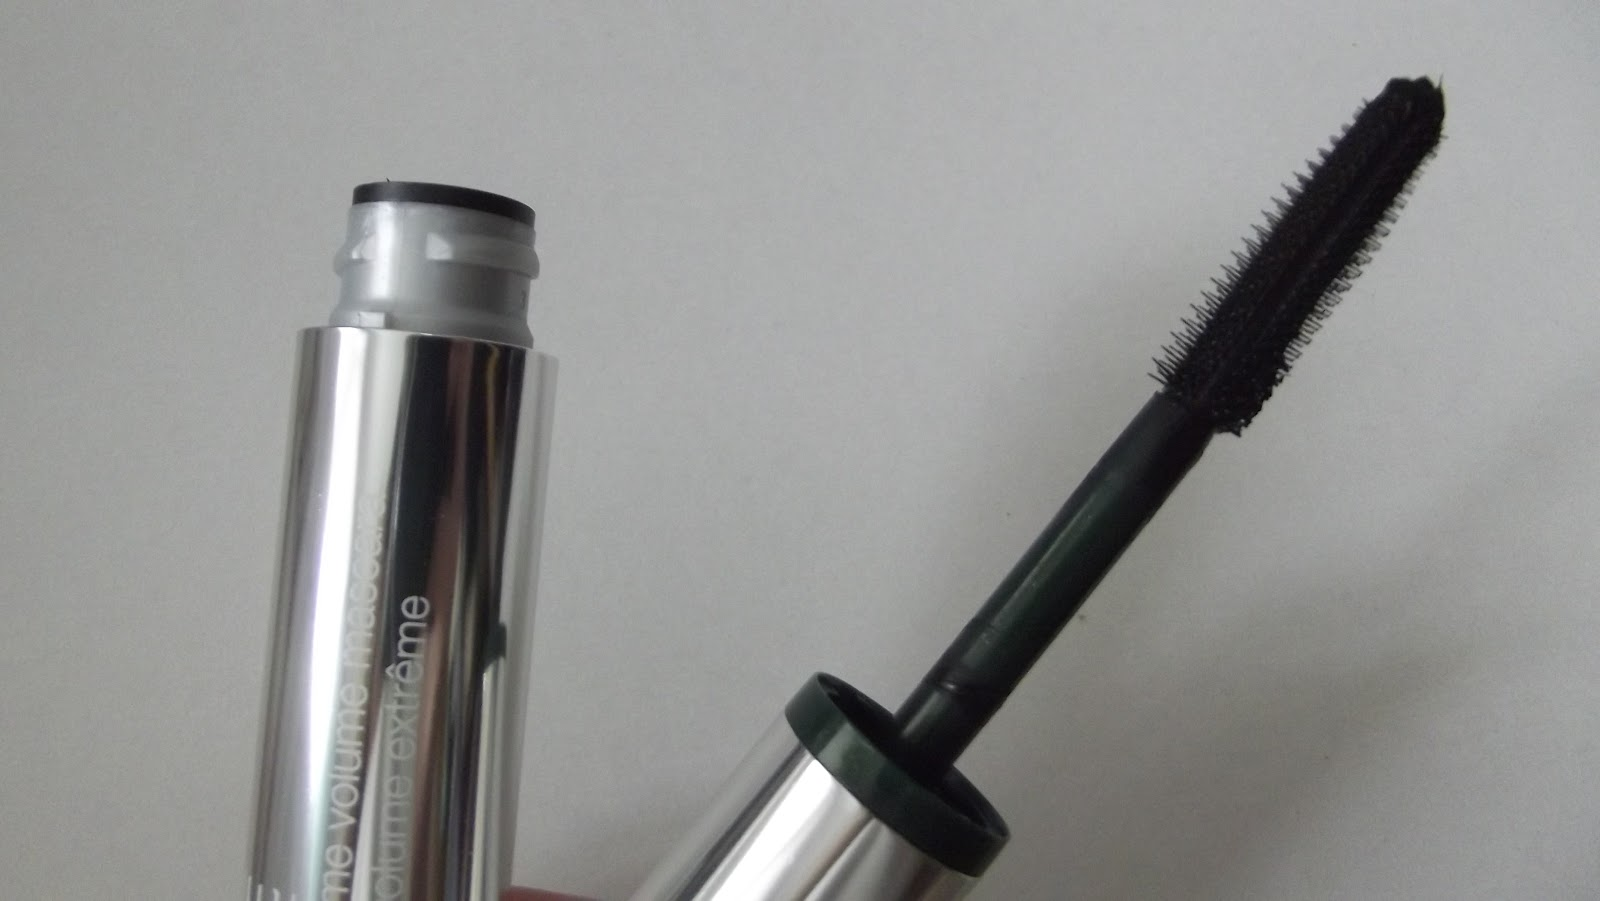 New Clinique High Impact Extreme Volume Mascara | Perfectly Polished